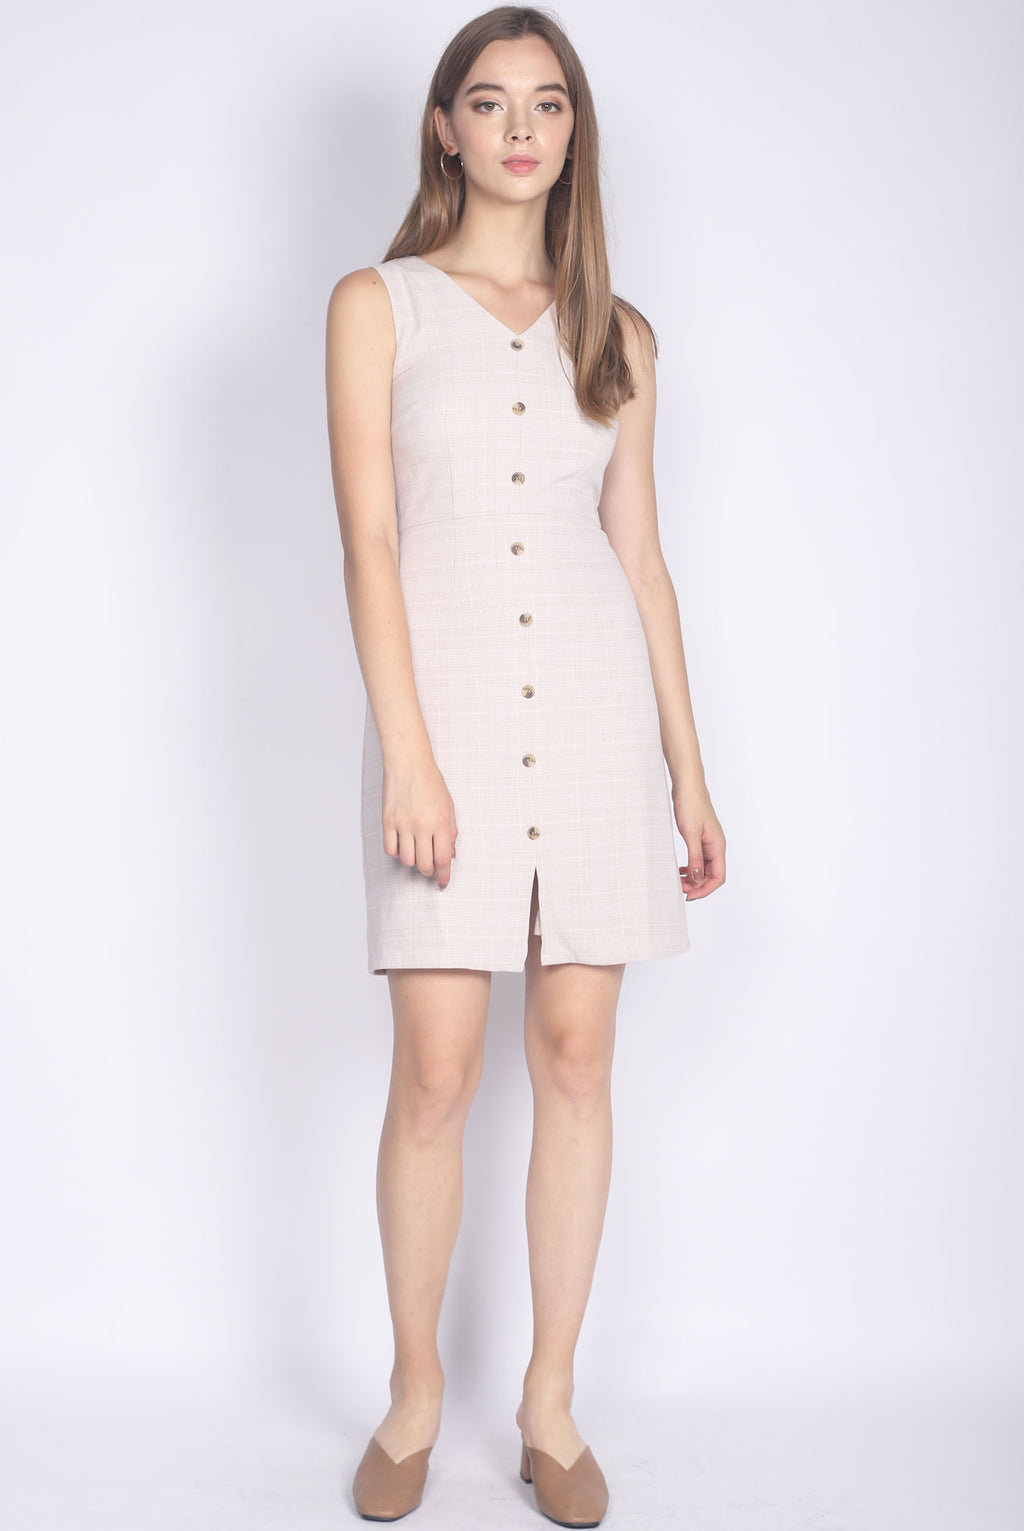 Hannah Plaids Buttons Dress In Nude